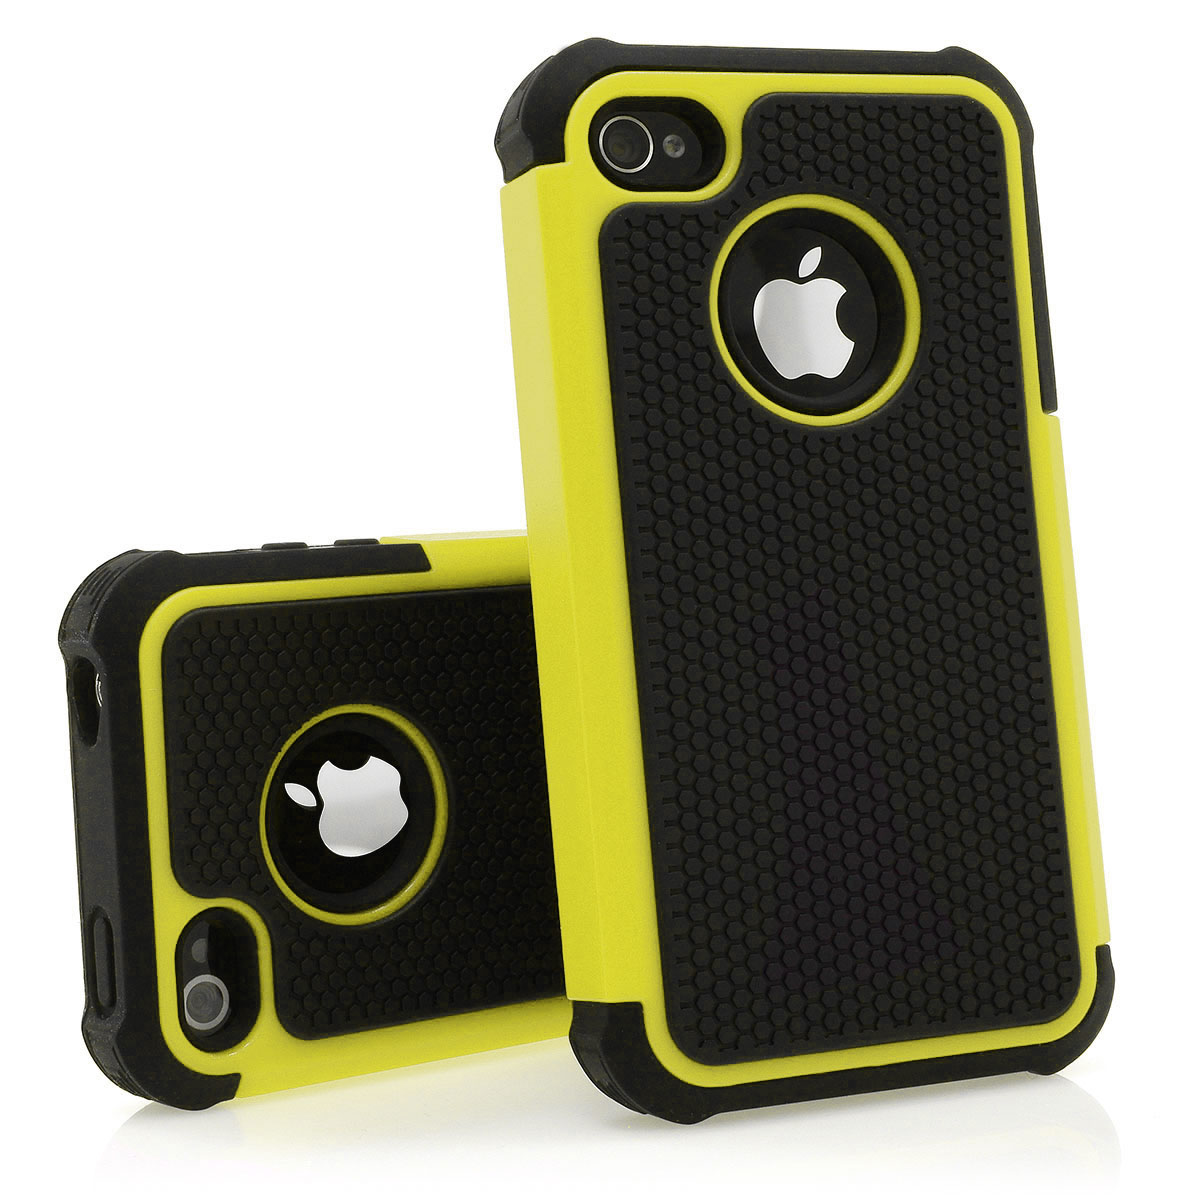 Silikon-Case-Schutz-Huelle-Cover-Bumper-Outdoor-fuer-Apple-iPhone-4-4S-in-8-Farben